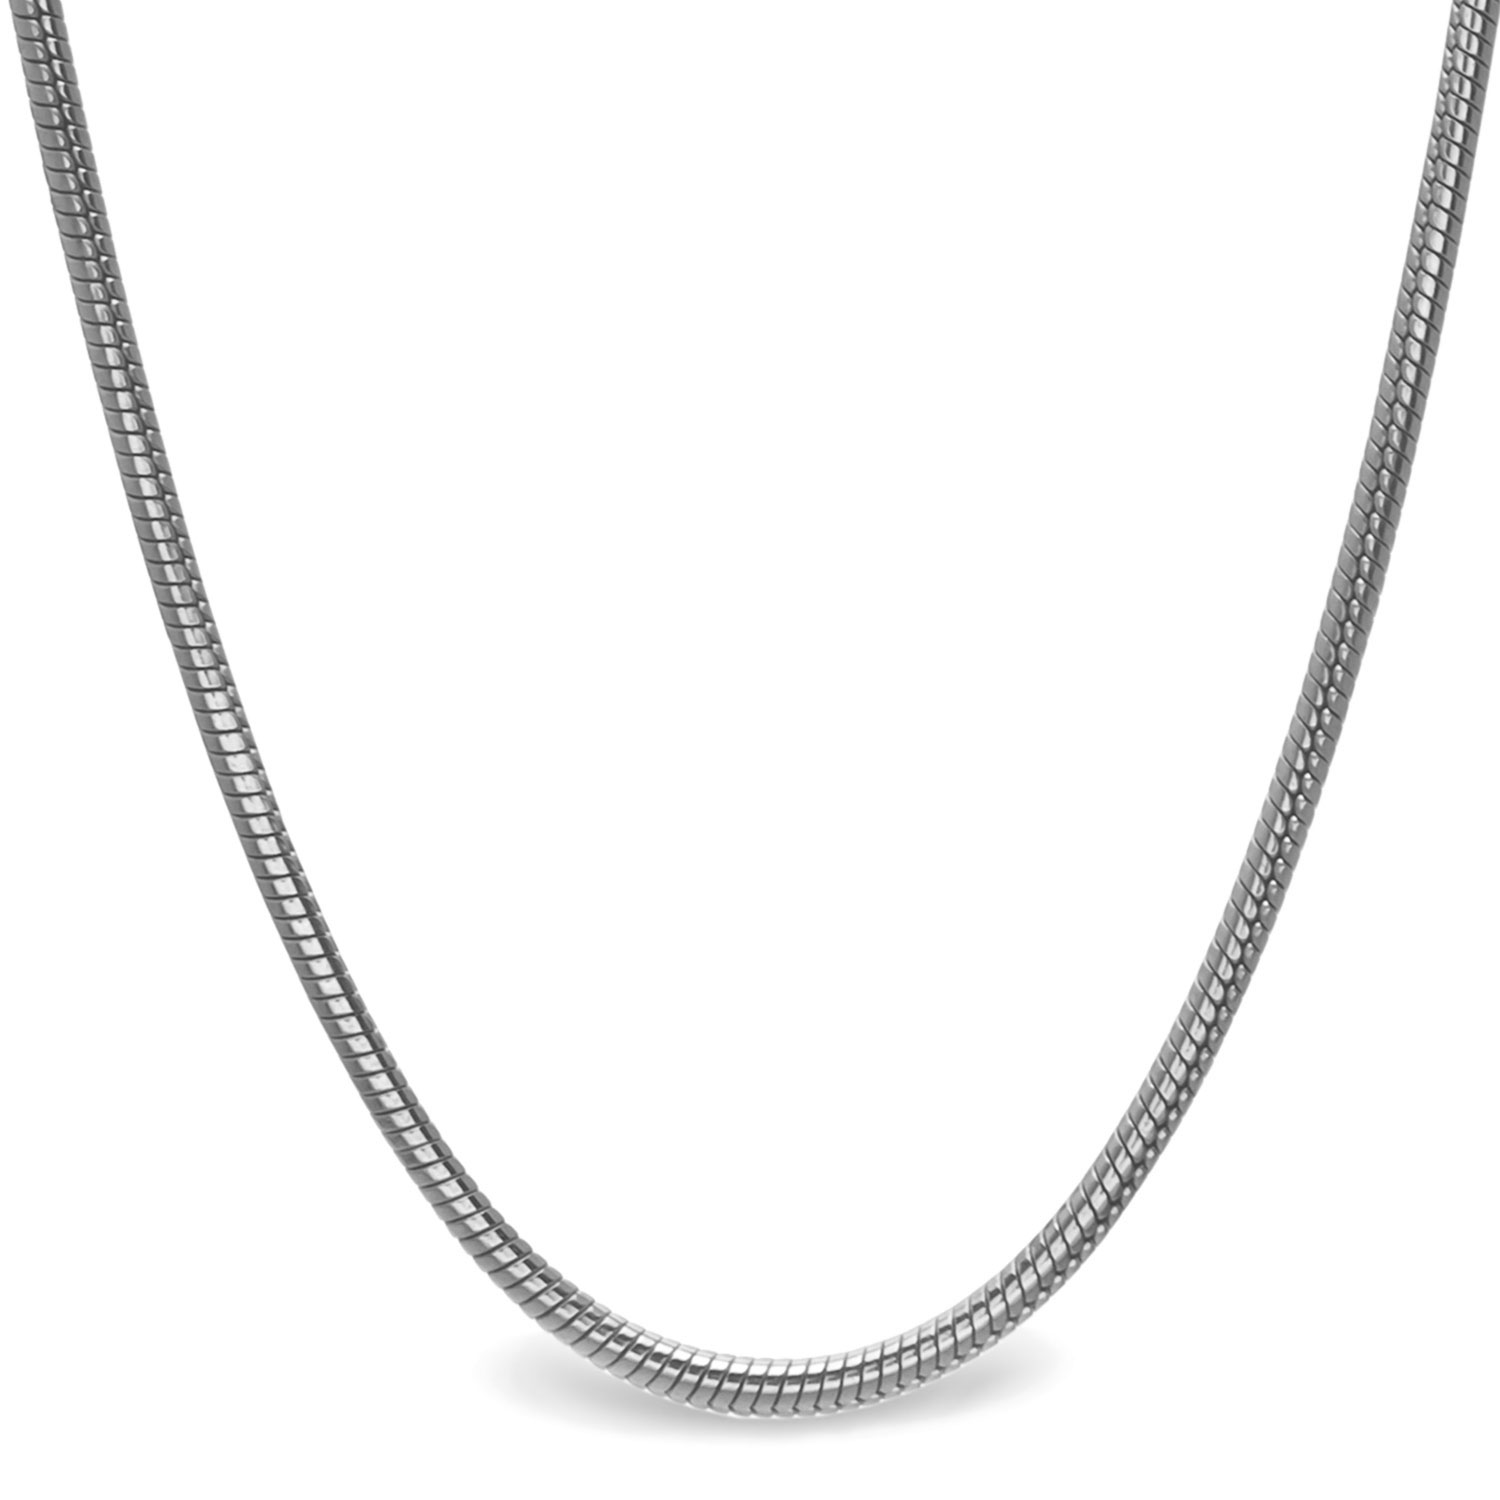 Classic Round Snake 14k White Gold Necklace - 30 in.